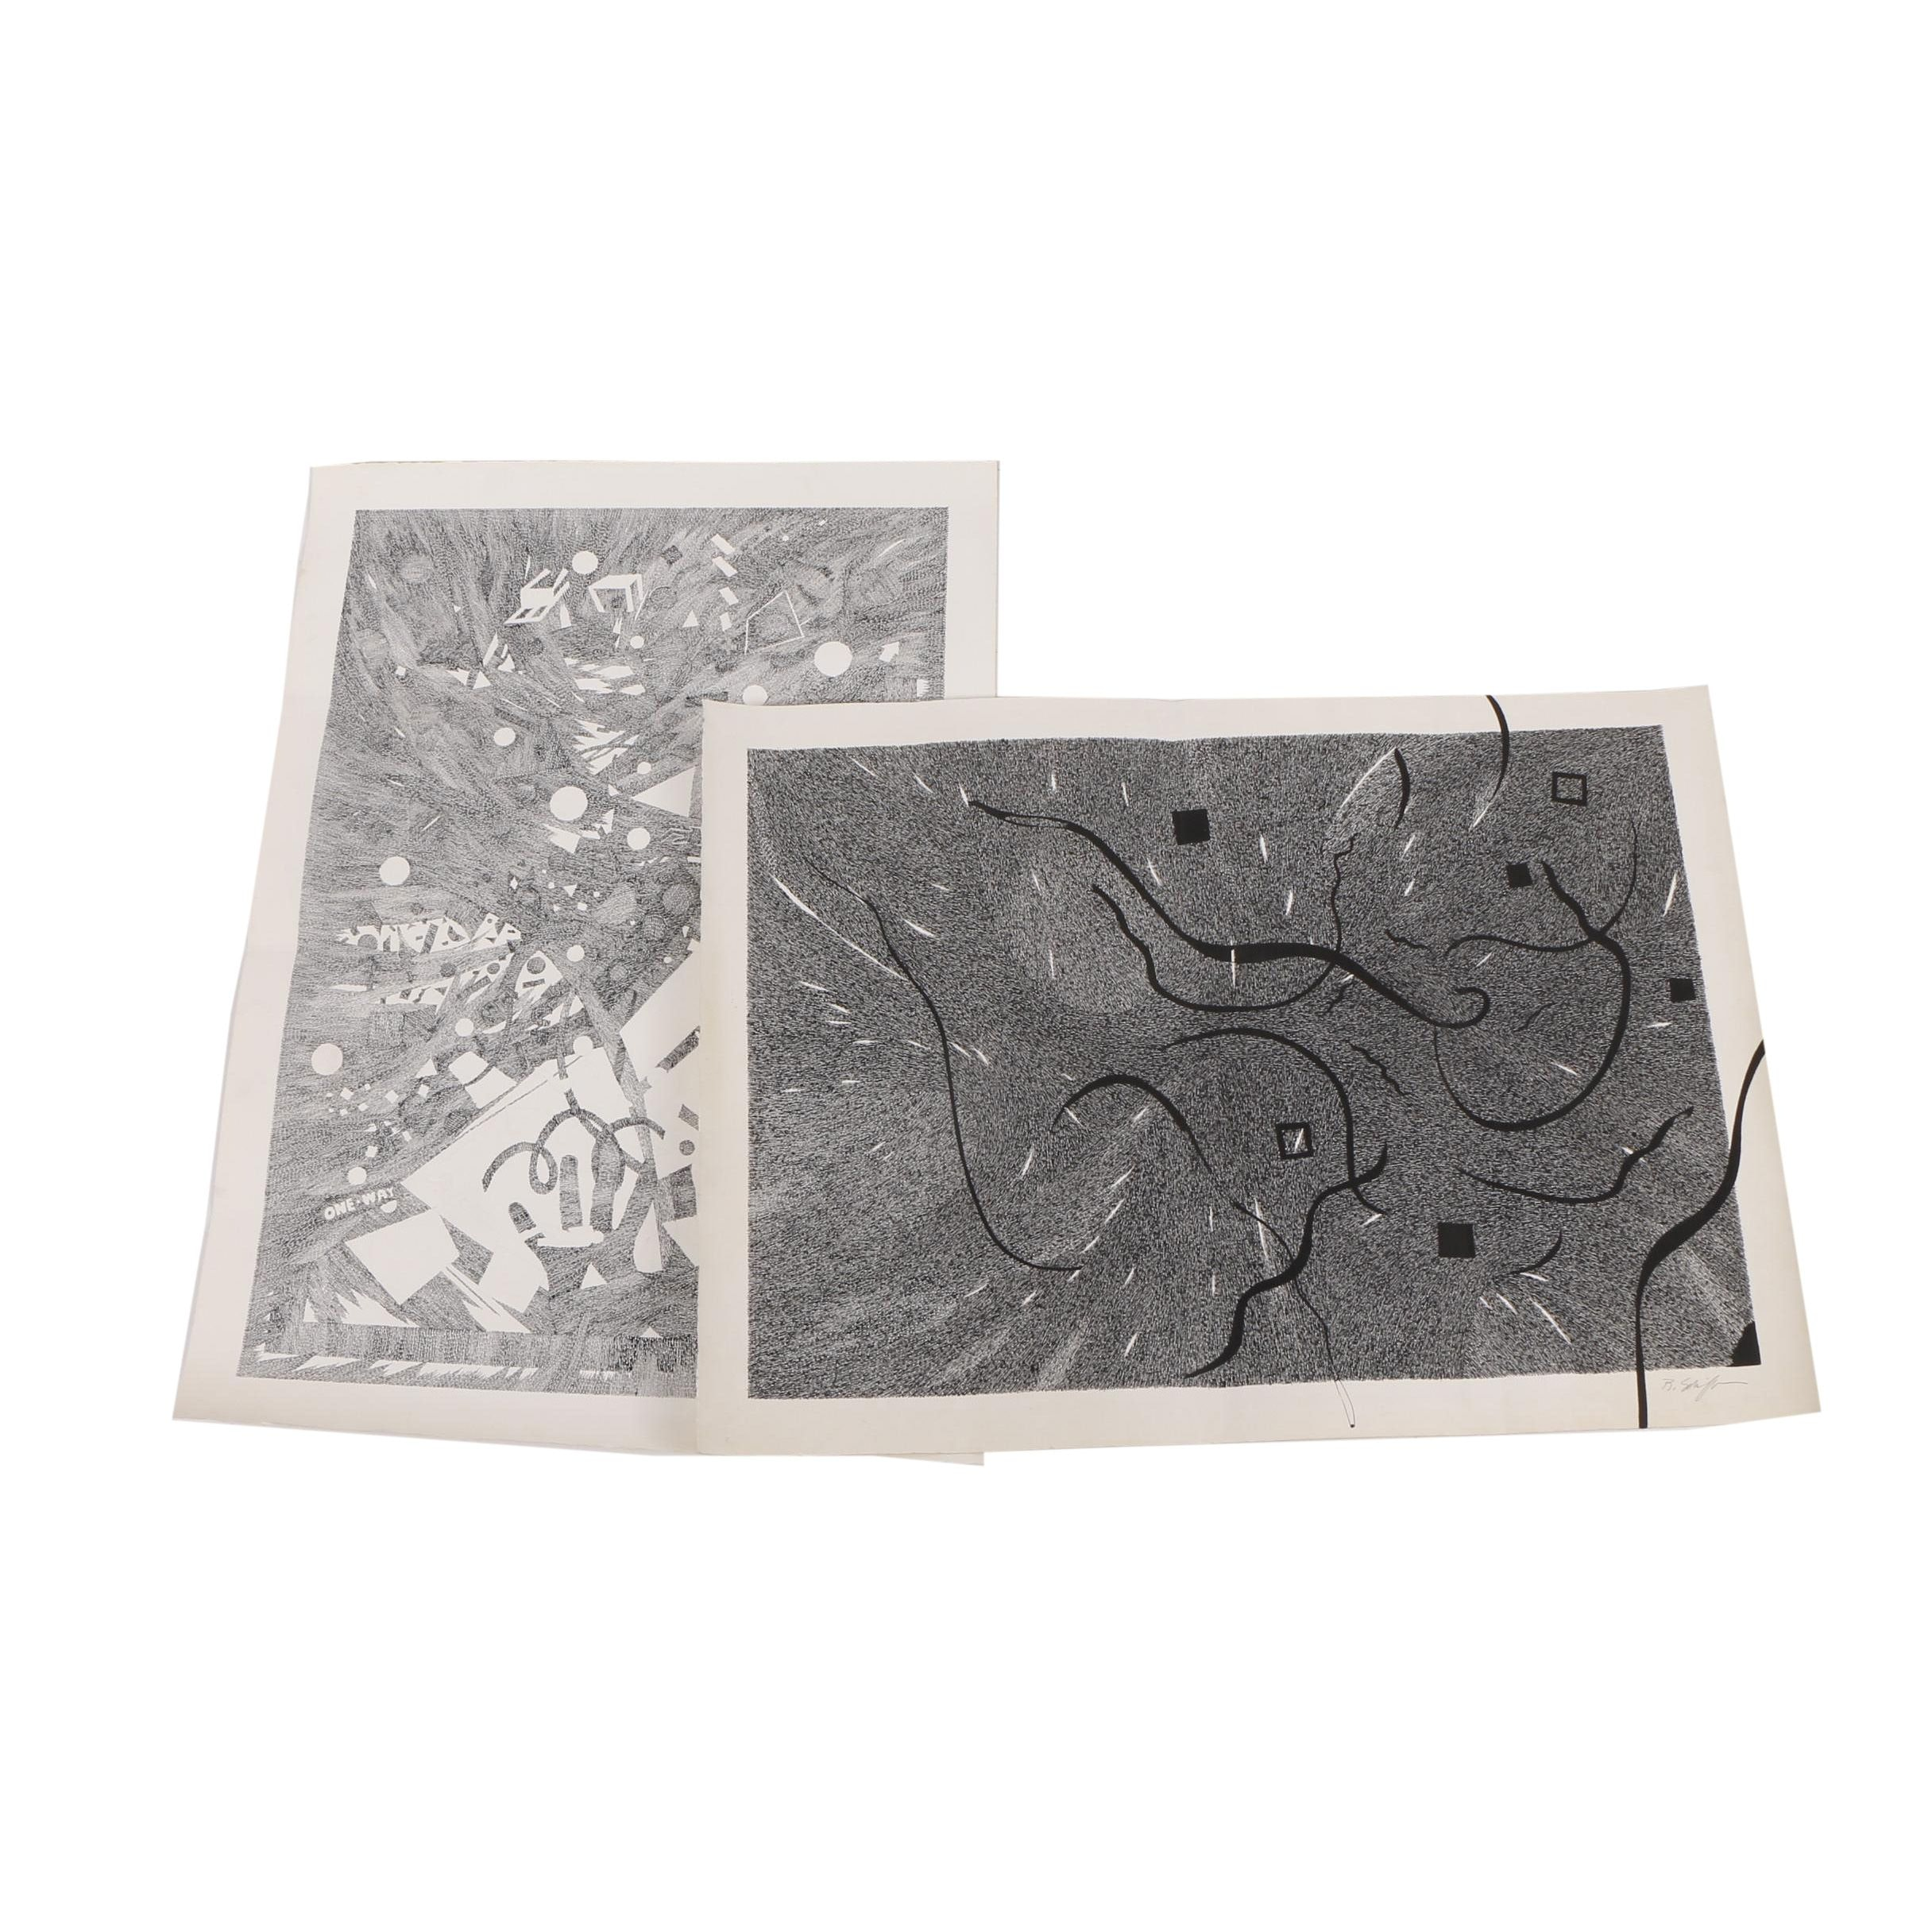 Bill Schiffer Abstract Ink Drawings